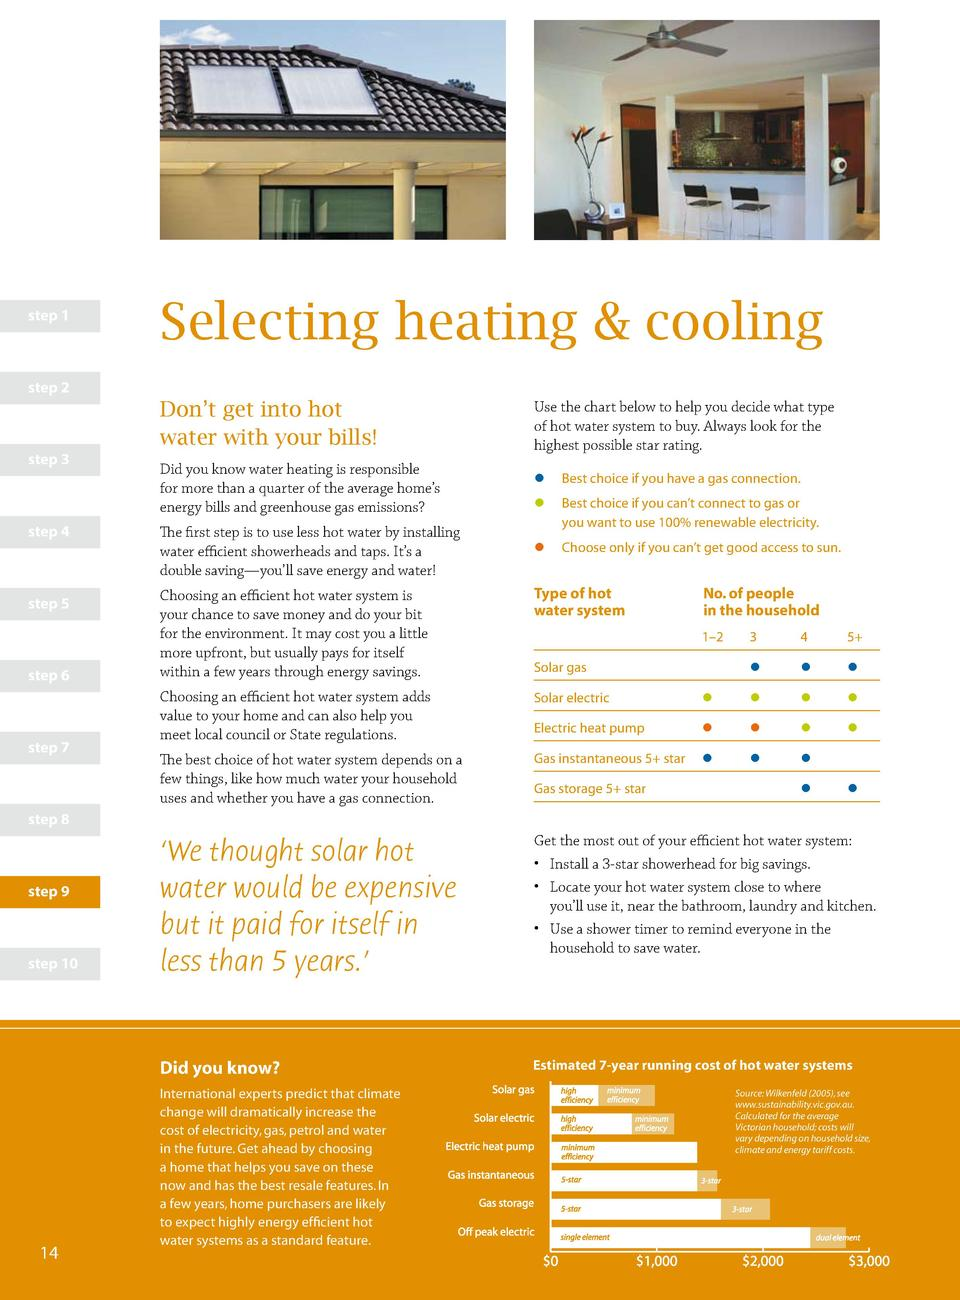 step 1  Selecting heating   cooling  step 2  Don   t get into hot water with your bills  step 3  step 4  step 5  Did you k...